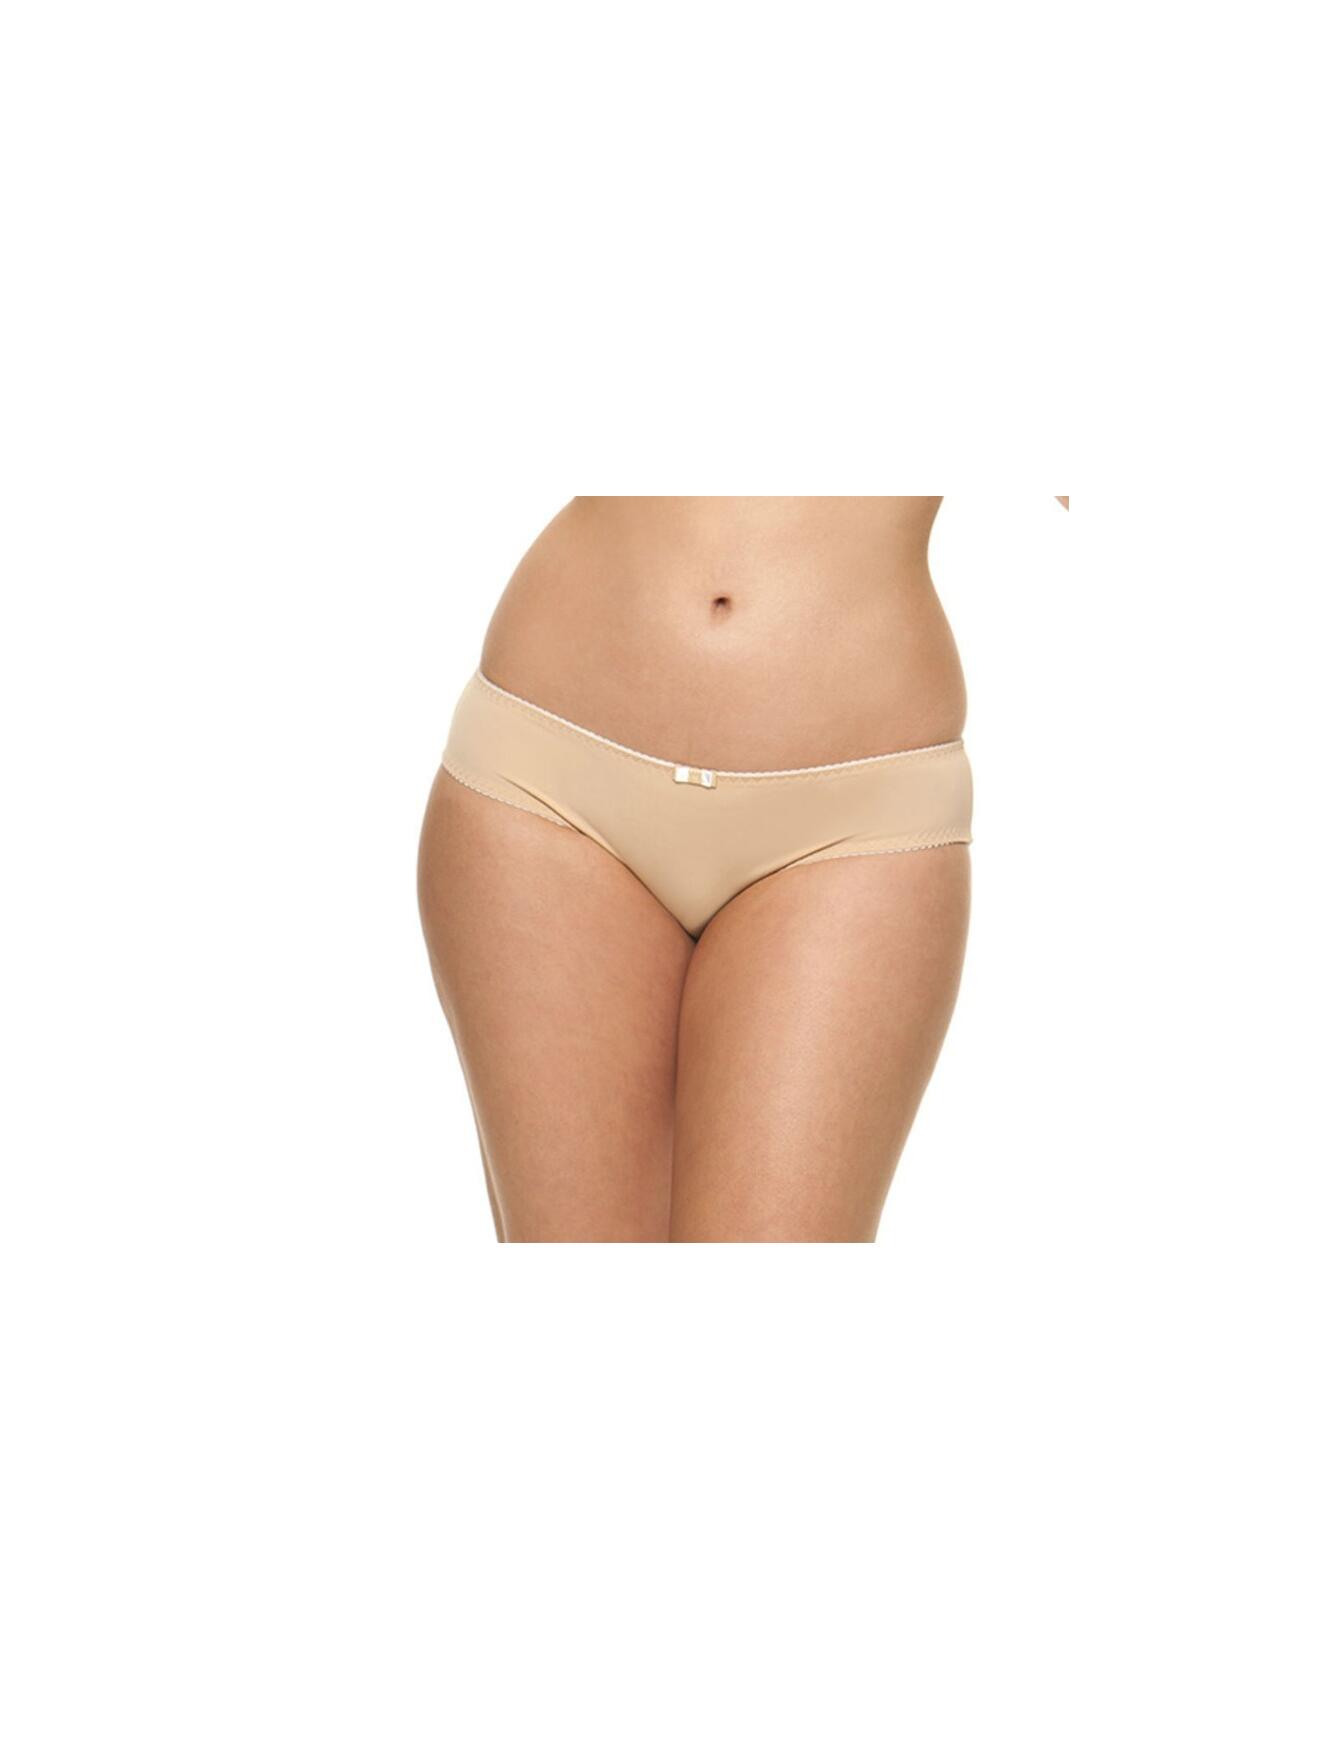 Curvy Kate Daily Boost : Brief - Nude